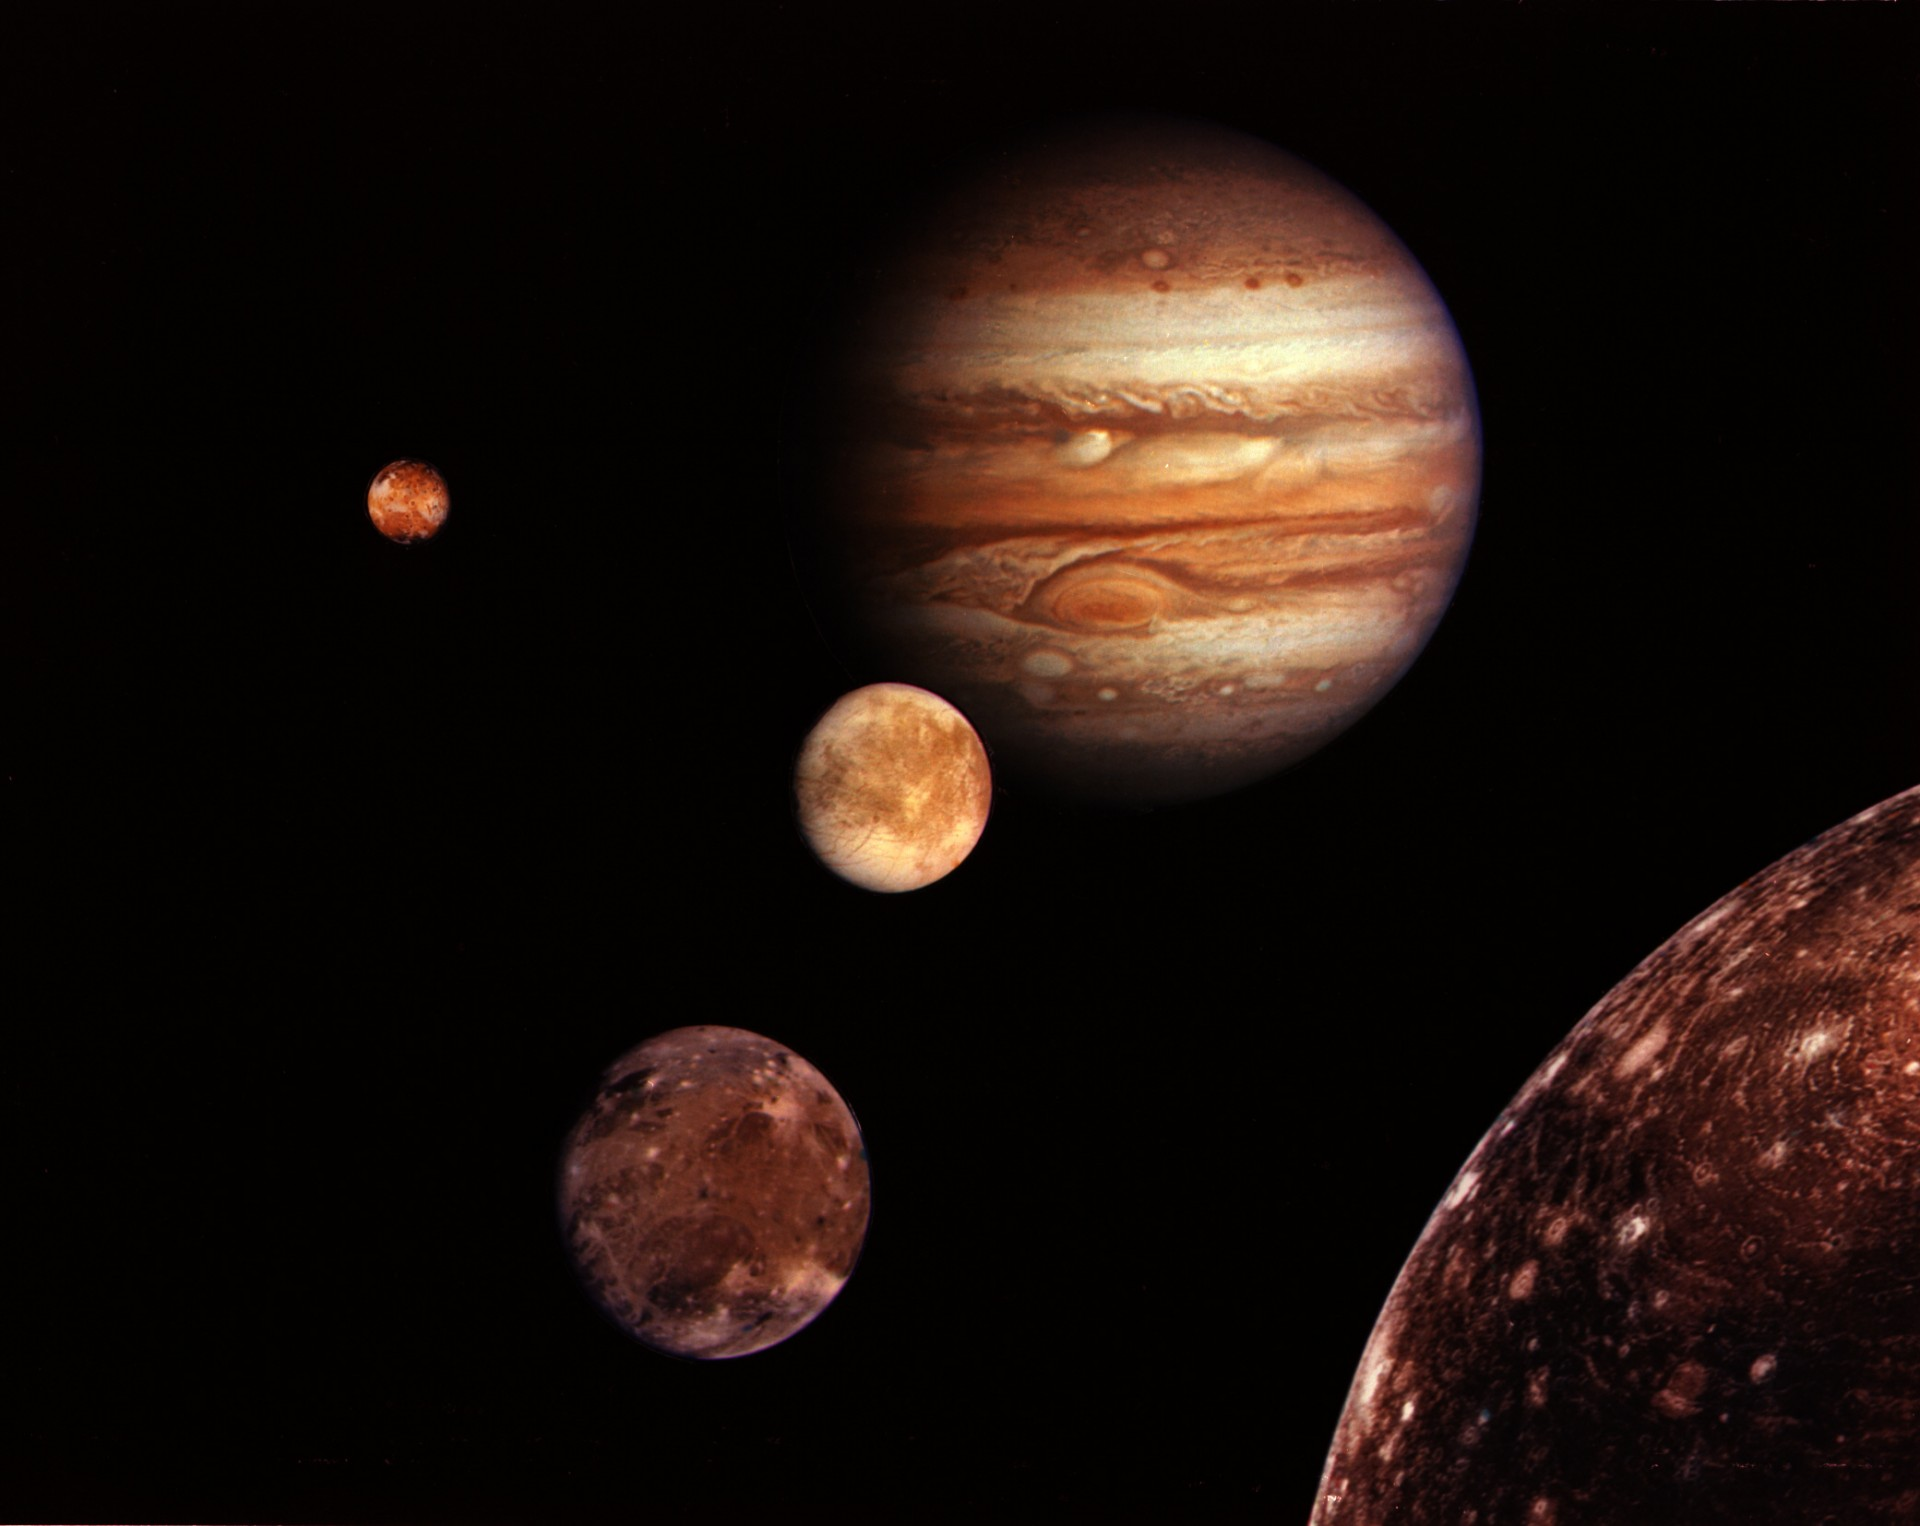 Planetary Photography